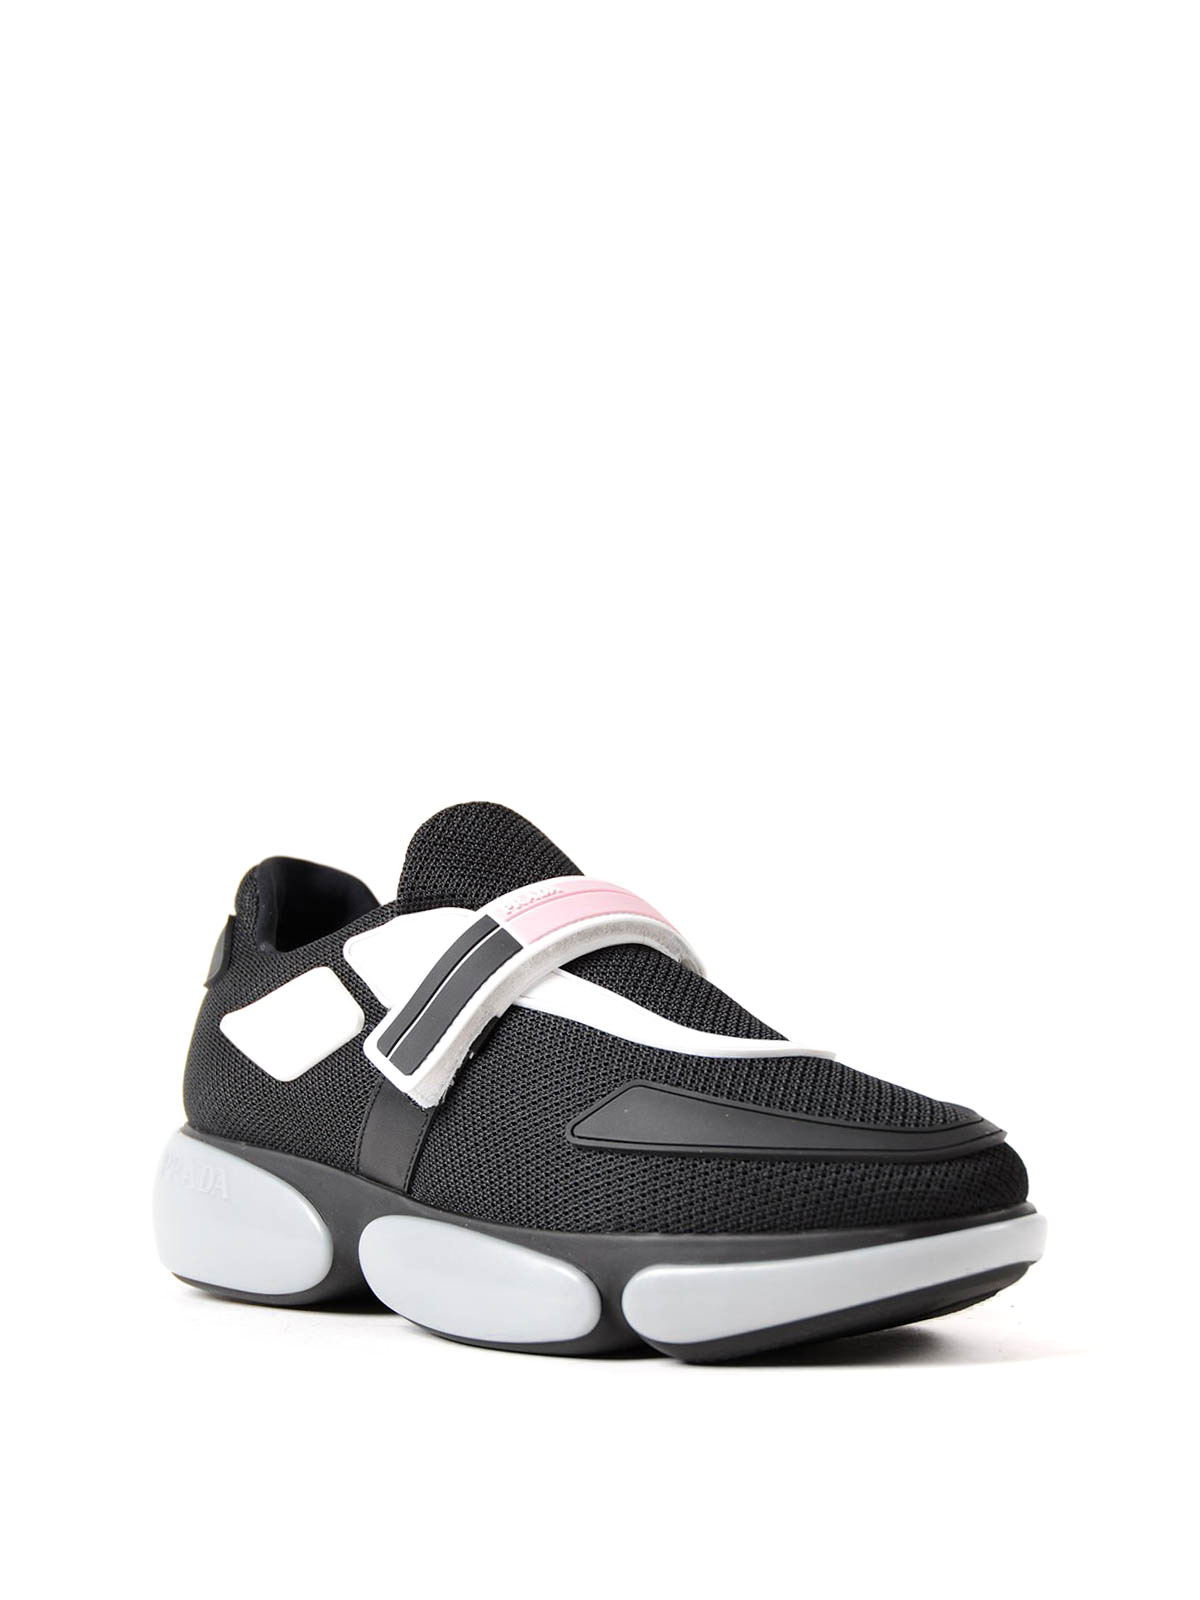 Outlet Manchester Free Shipping Shop Prada Cloudbust Cloth Trainers 2018 Unisex Online 100% Guaranteed Cheap Cost l0gcYWeih